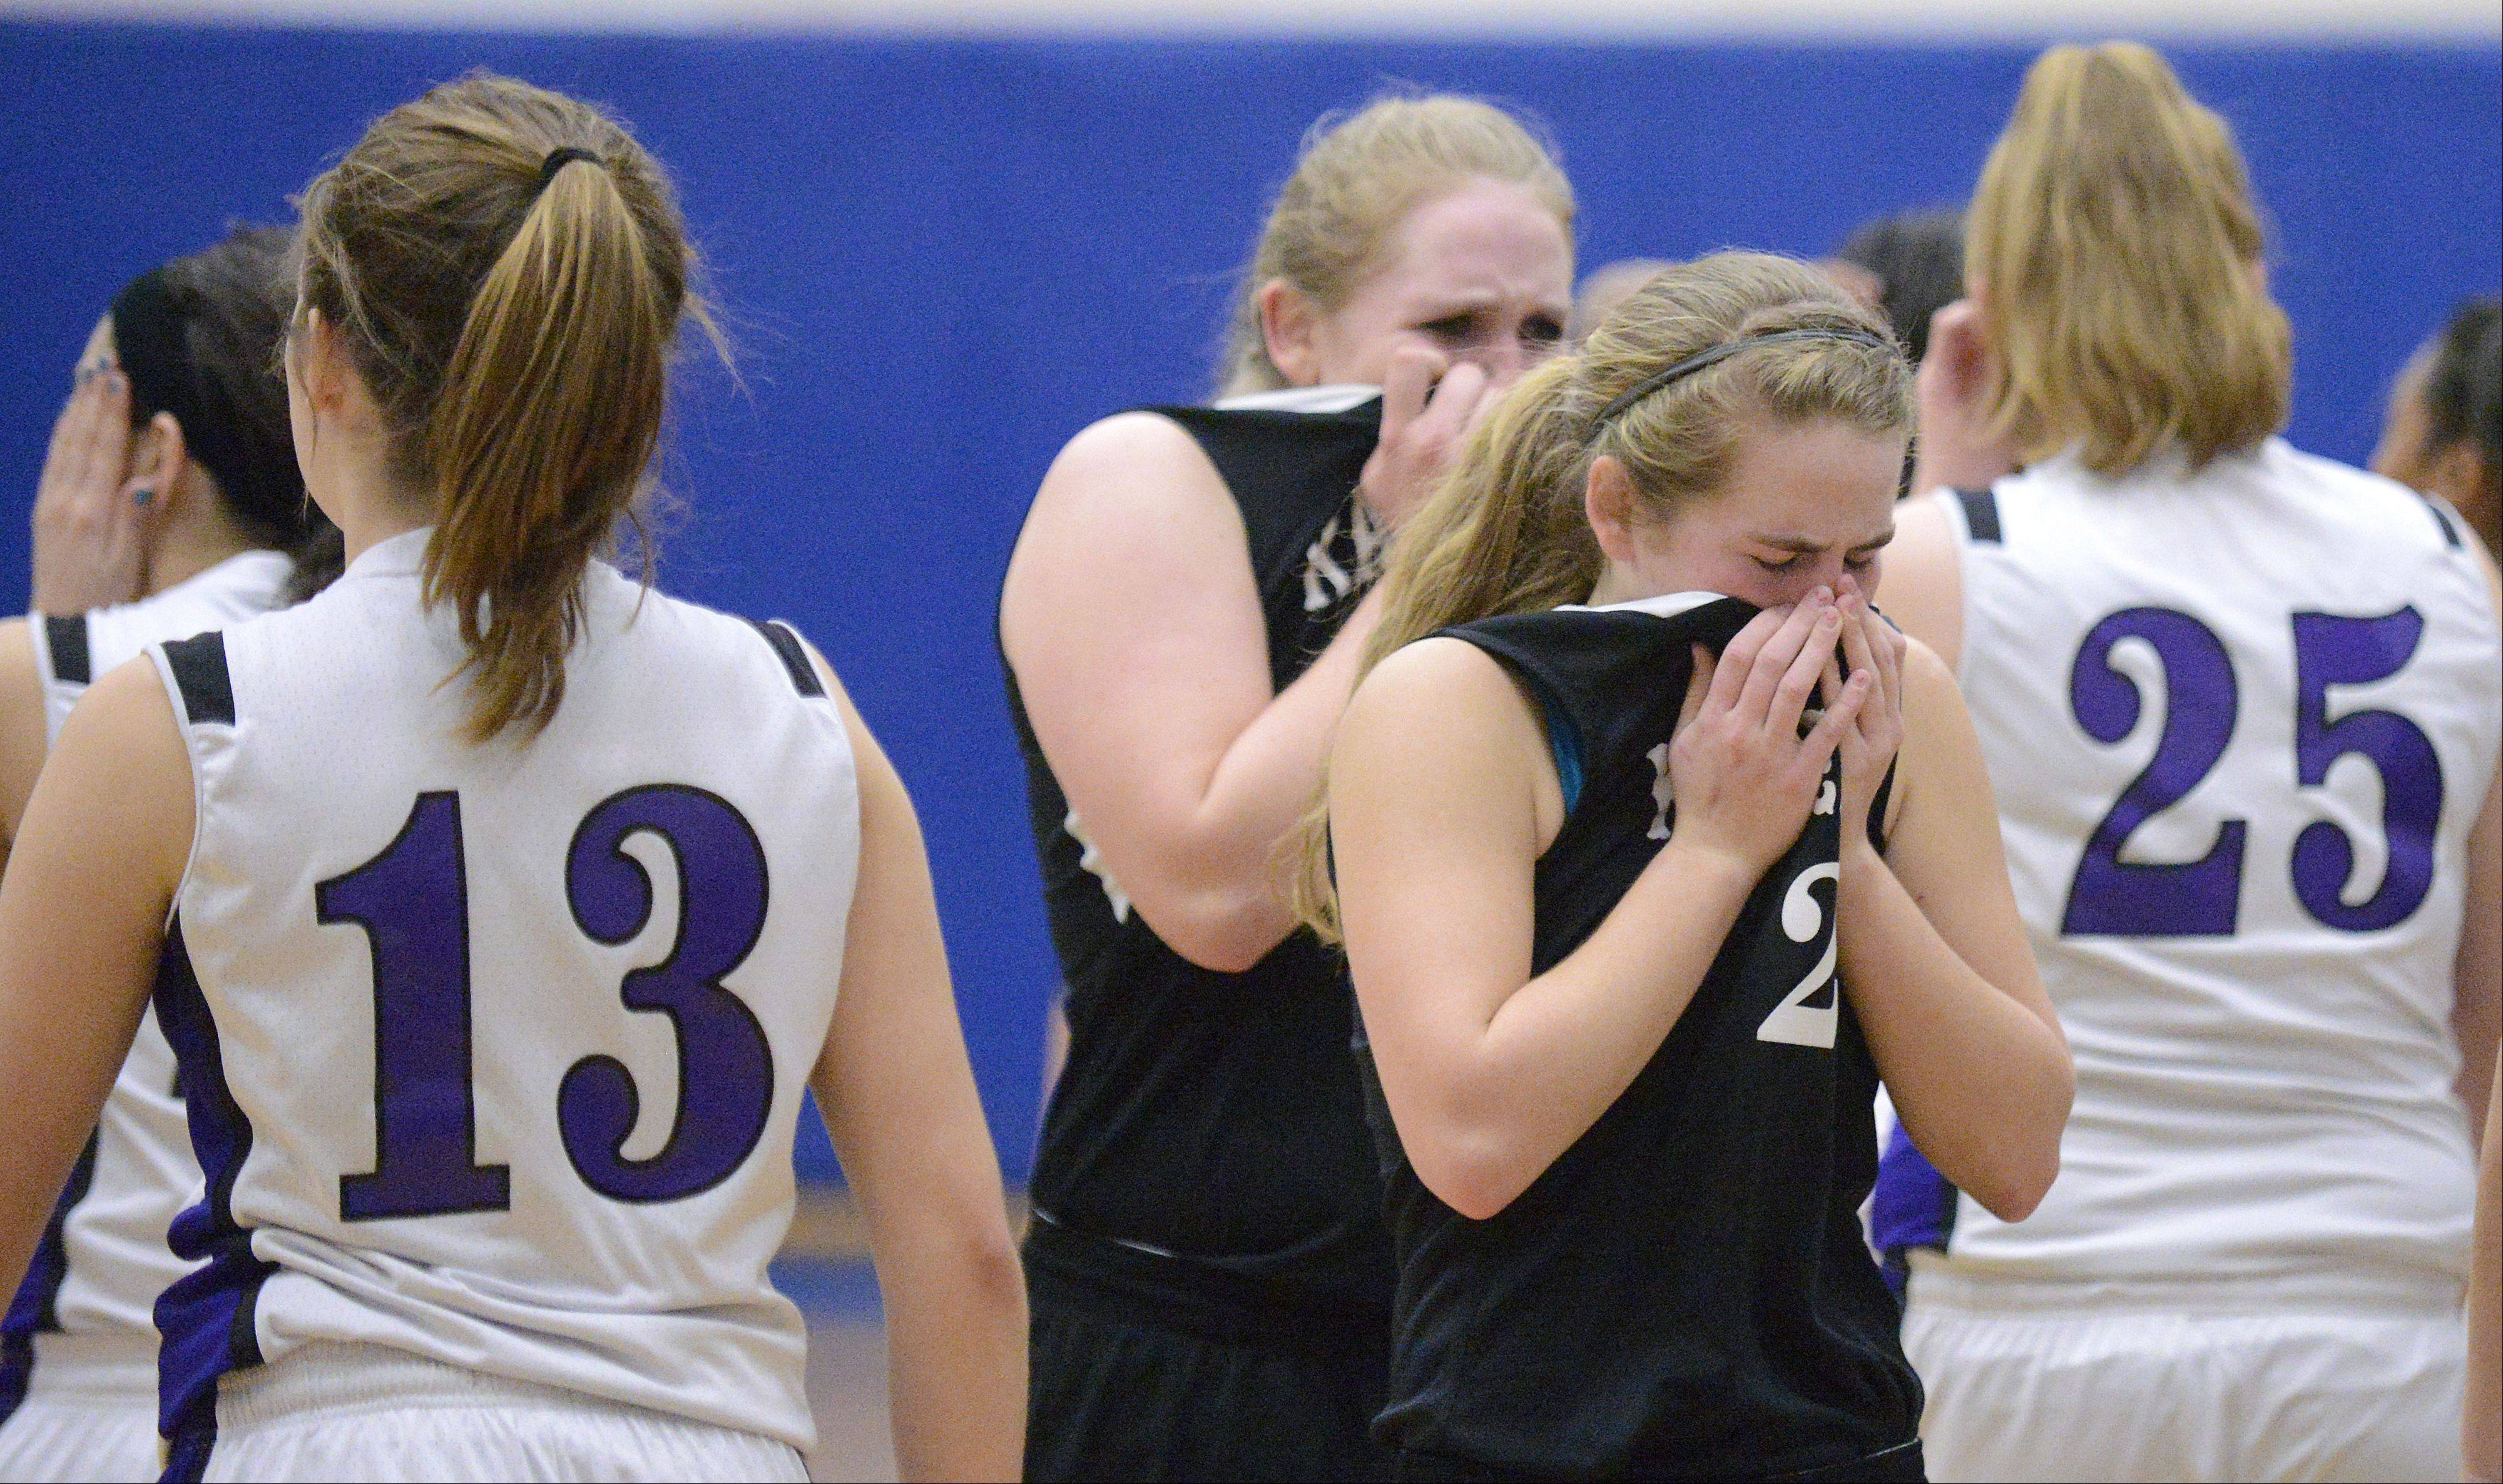 Kaneland's Sarah Grams and Ashley Prost walk through Plano players after their loss in the Class 3A regional game on Wednesday, February 13.